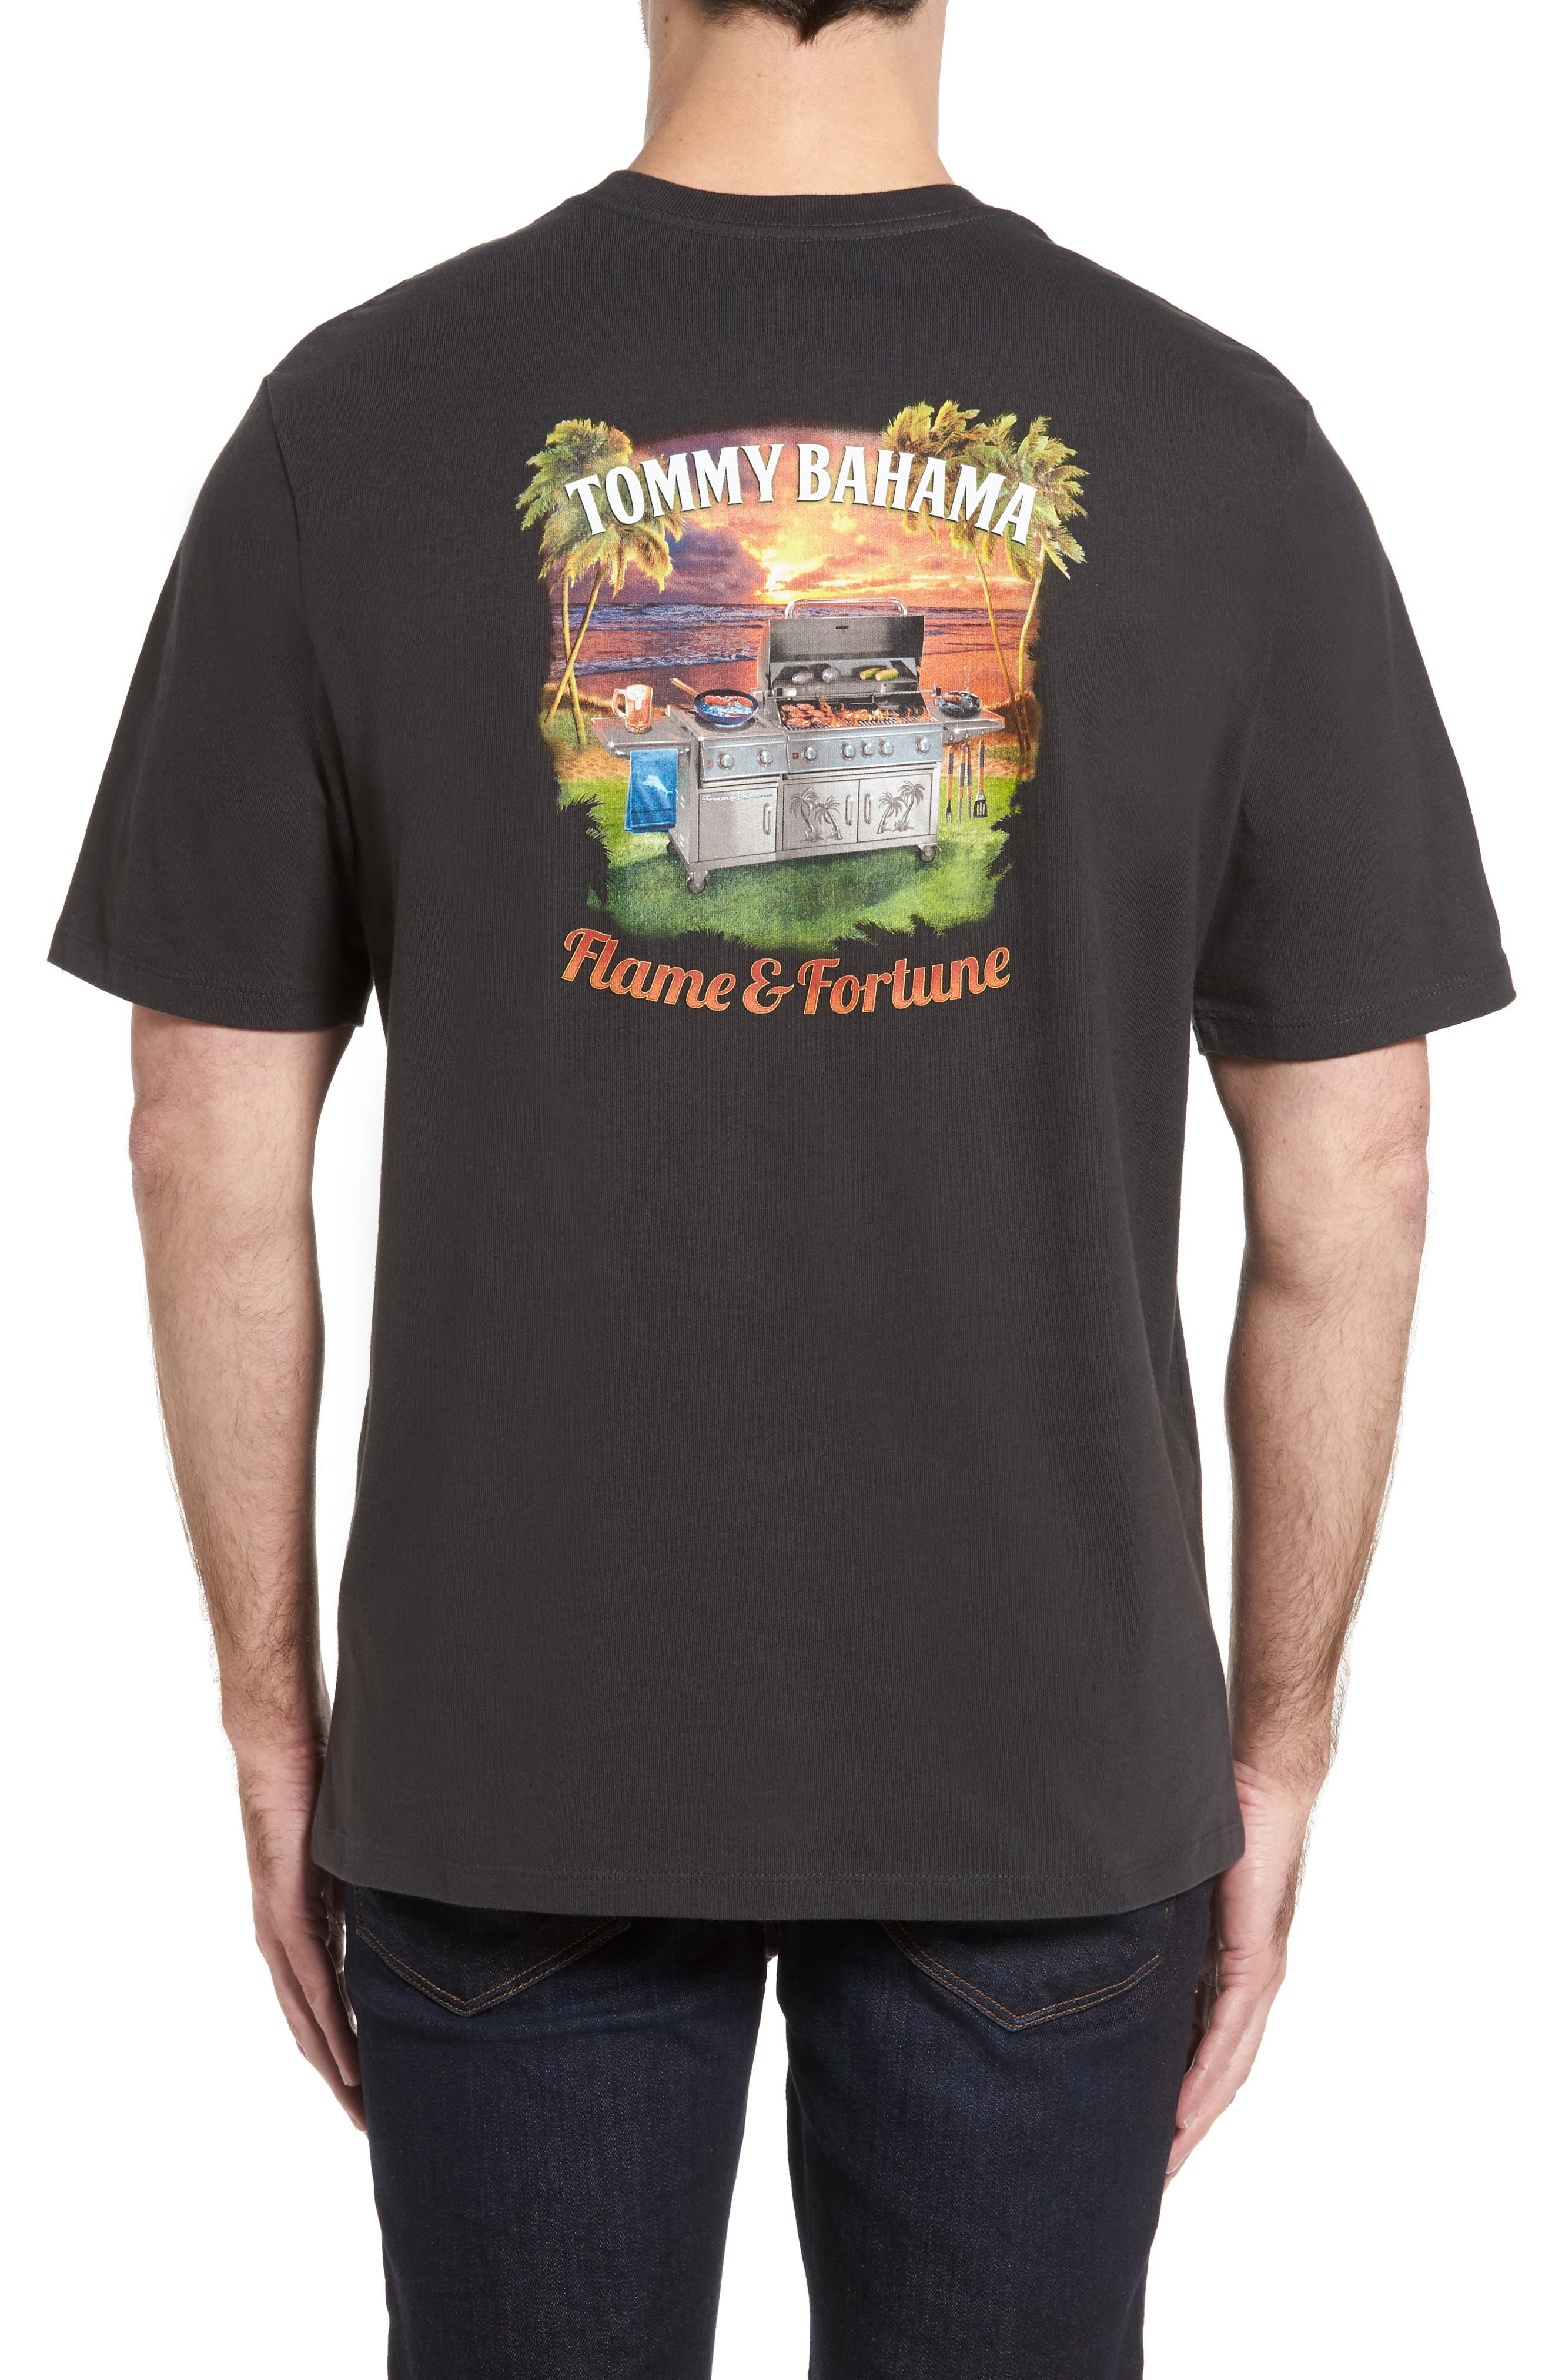 Alternate Image 2  - Tommy Bahama Flame & Fortune T-Shirt